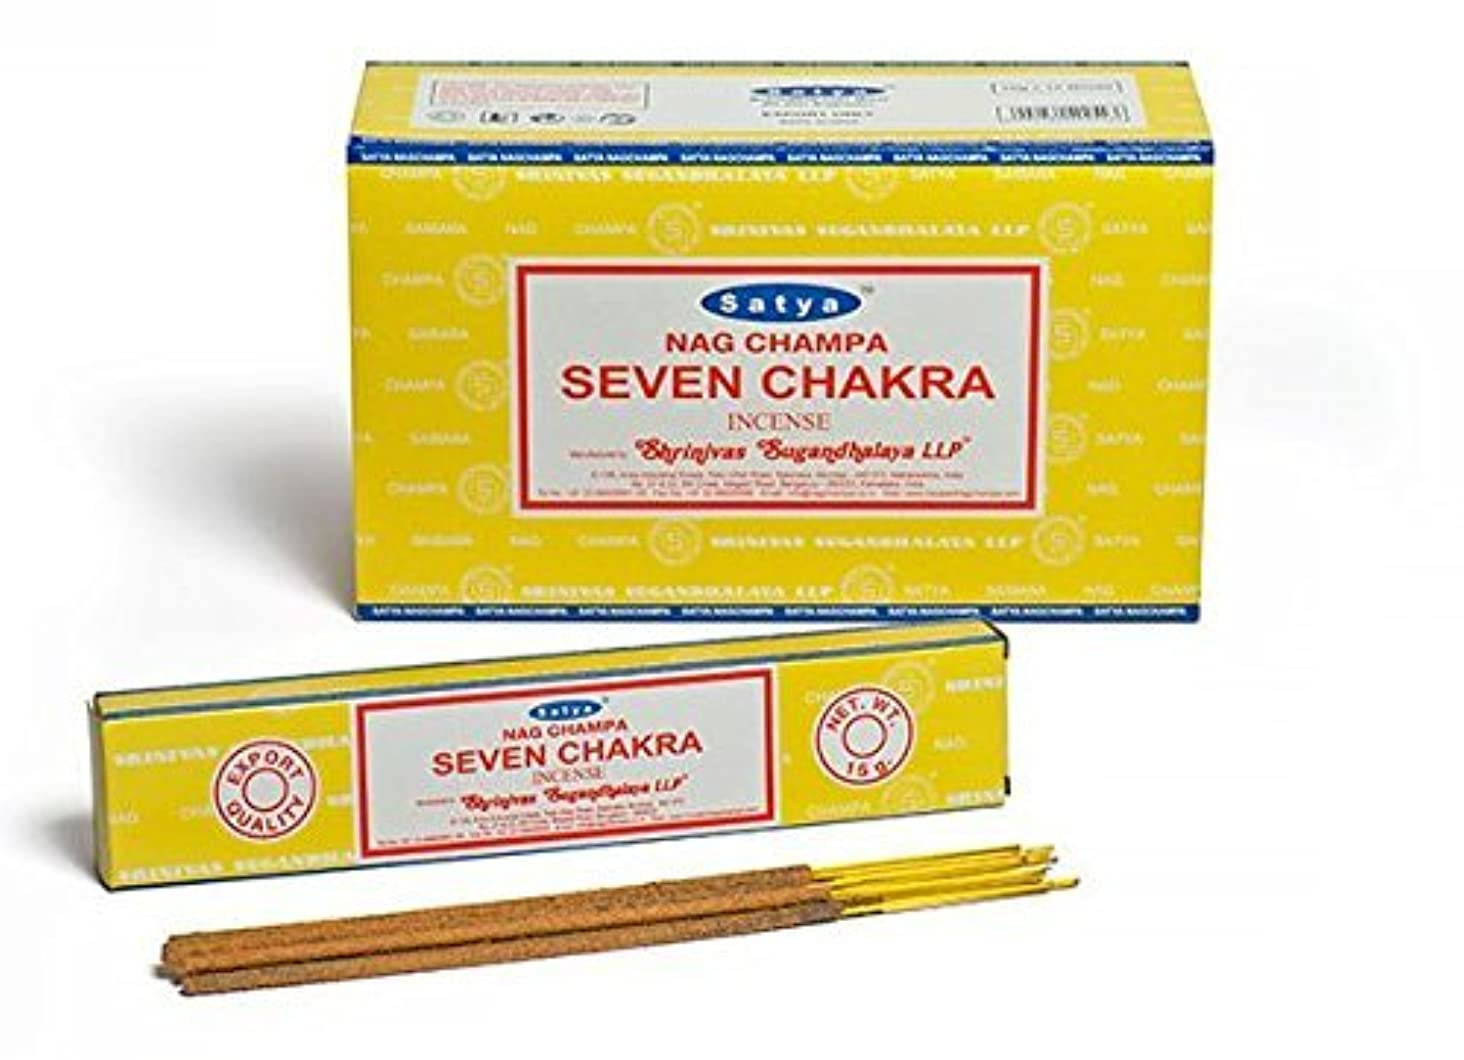 前奏曲熱望する味方Buycrafty Satya Champa Seven Chakra Incense Stick,180 Grams Box (15g x 12 Boxes)